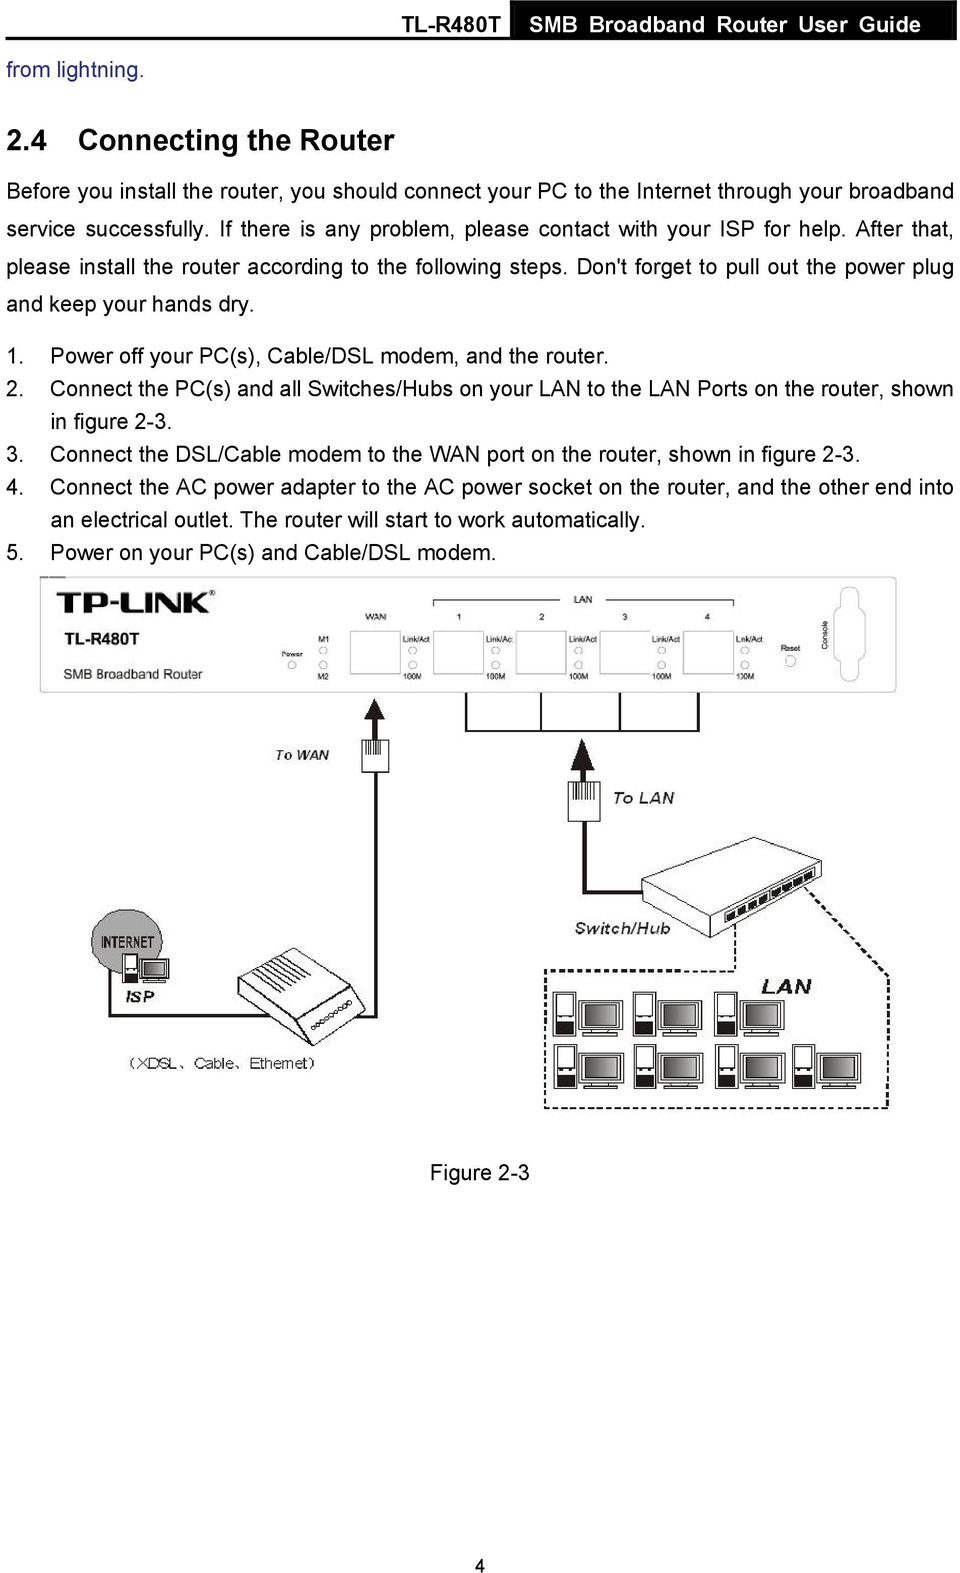 1. Power off your PC(s), Cable/DSL modem, and the router. 2. Connect the PC(s) and all Switches/Hubs on your LAN to the LAN Ports on the router, shown in figure 2-3. 3.